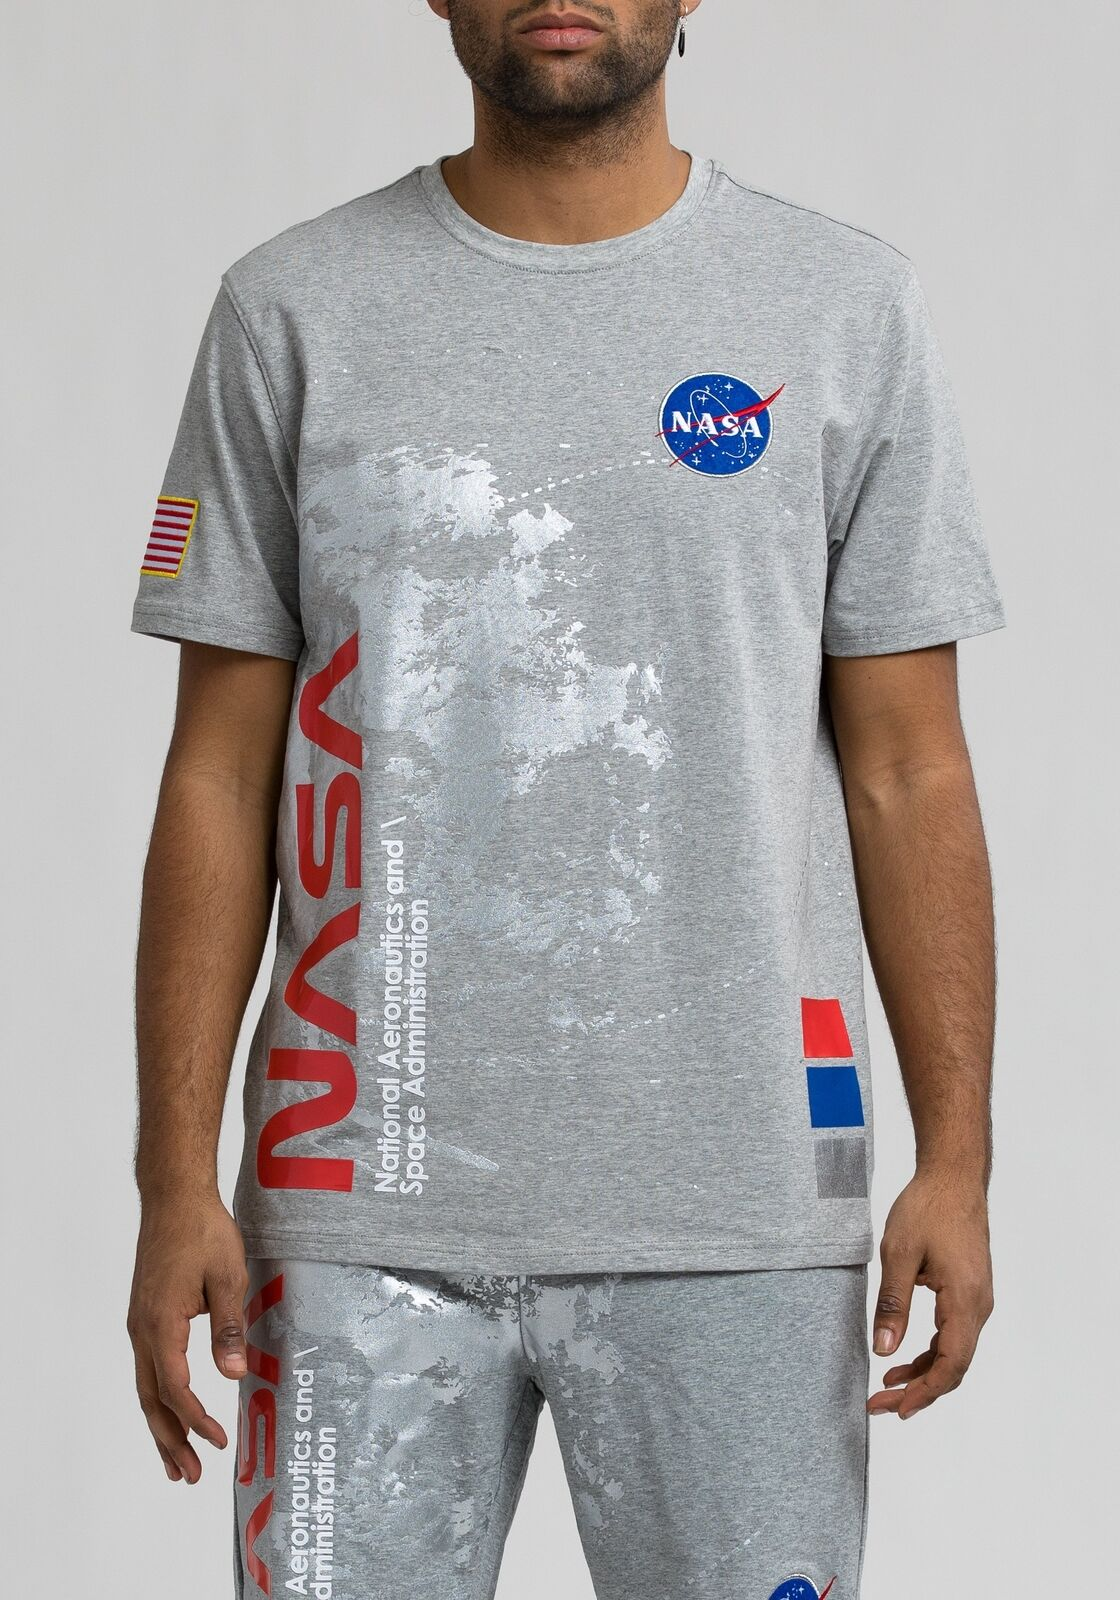 Hudson Nasa Short Sleeve Men's Shirts Grey bluee-Red h1052172-gry